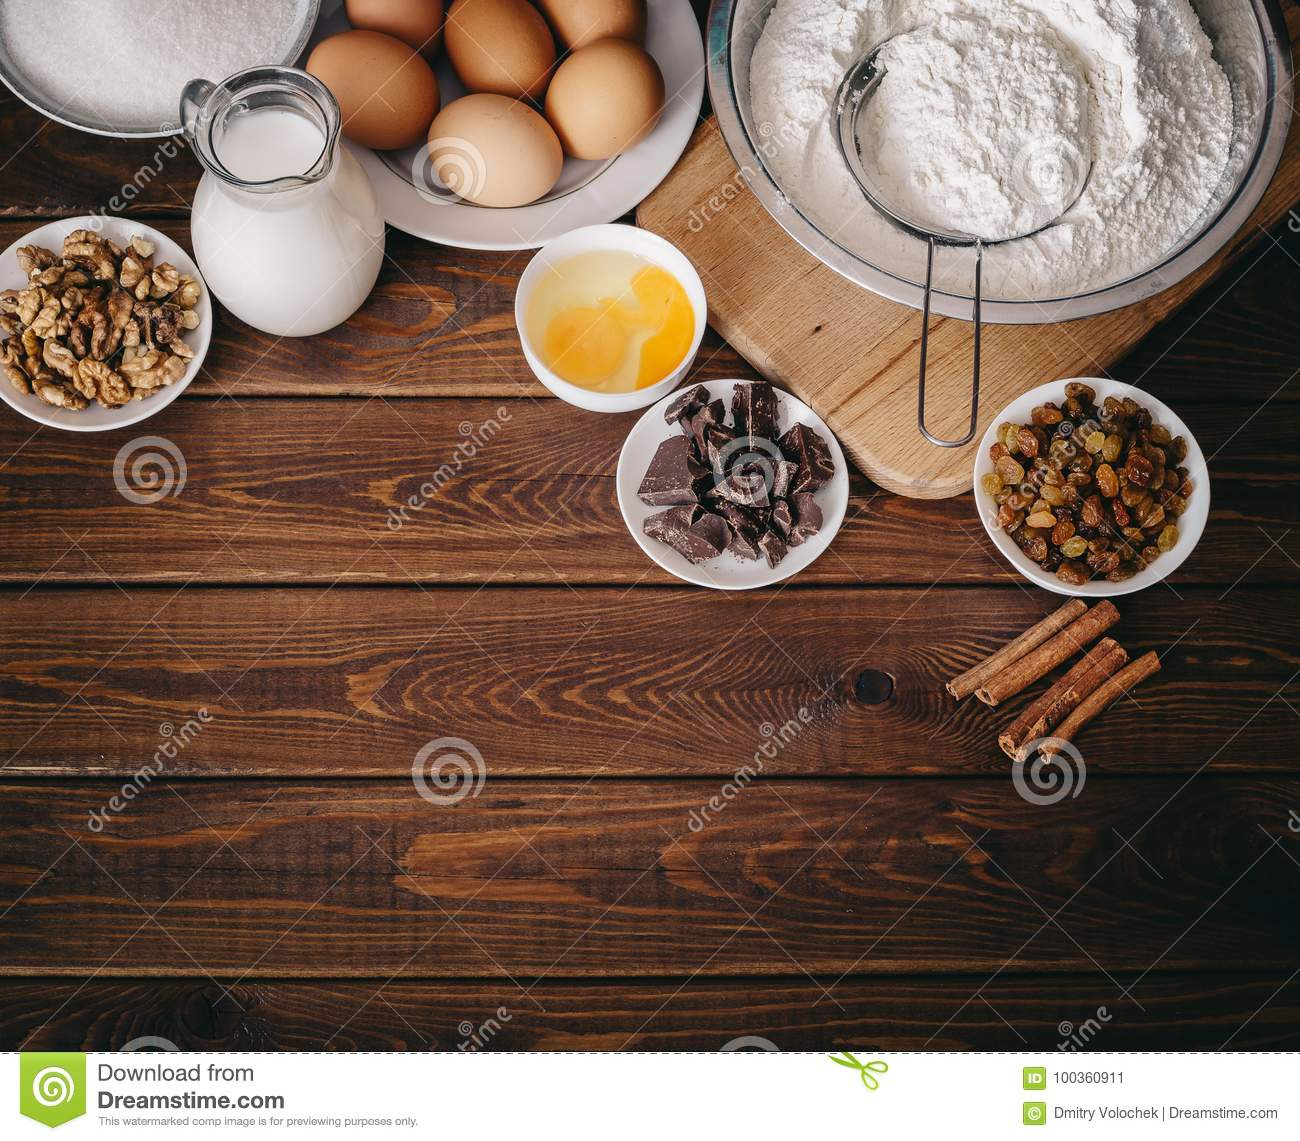 Top View Of Baking Ingredients For Homemade Pastry On Rustic